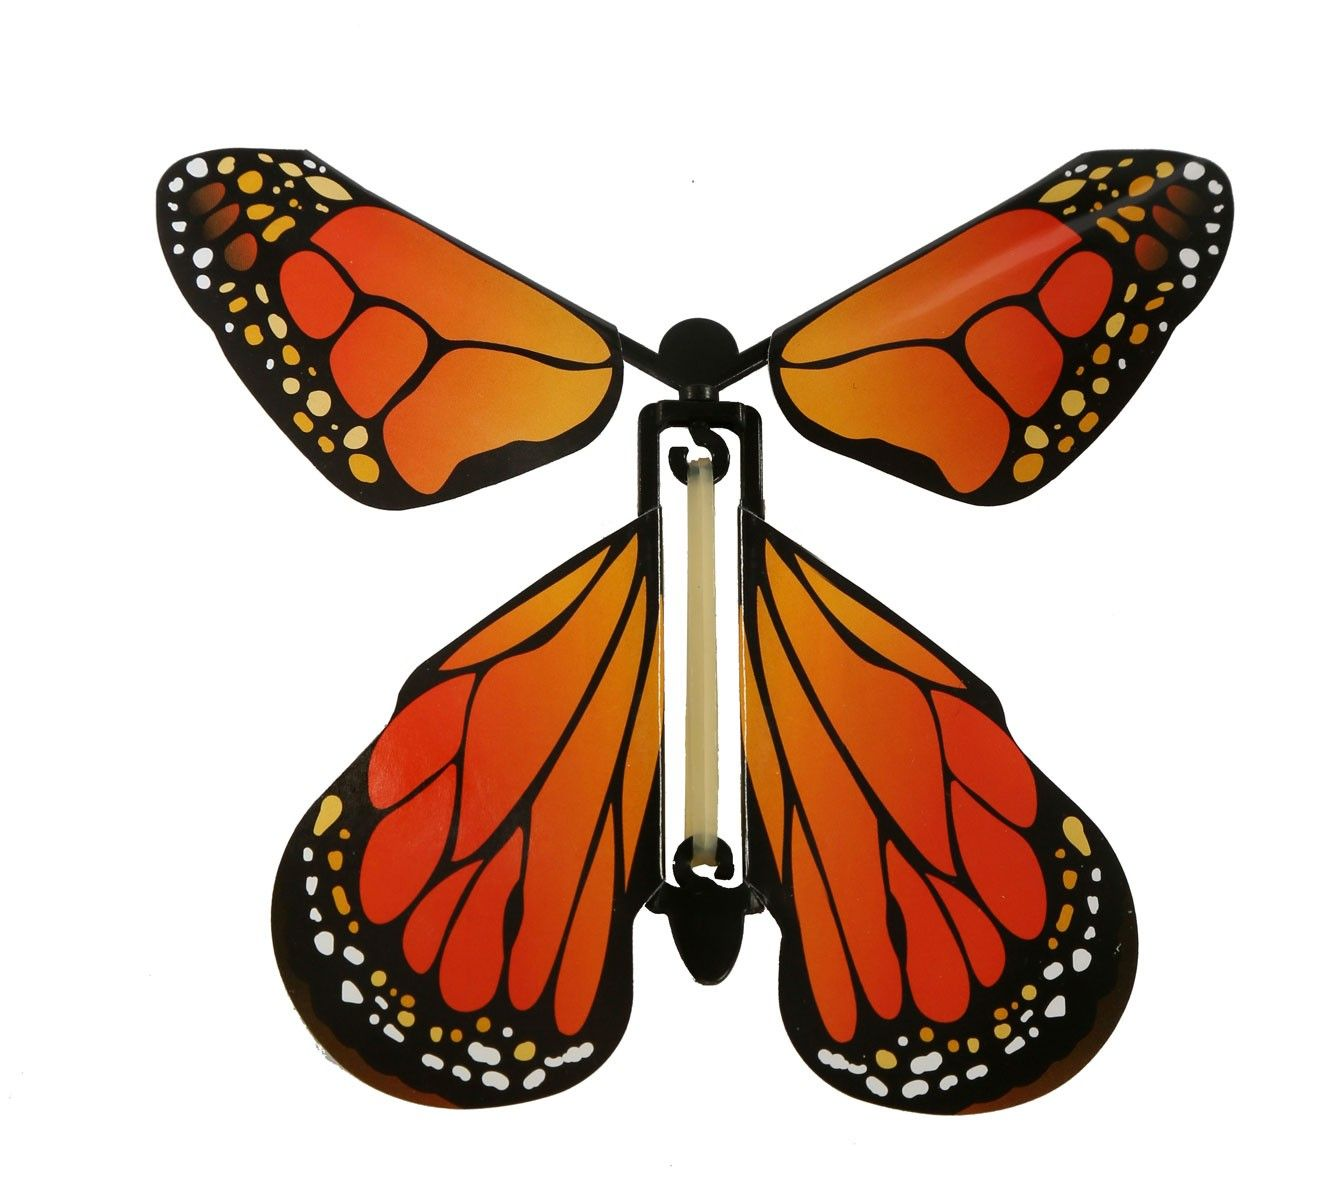 Insect Lore S Wind Up Butterflies Are Rubber Band Powered